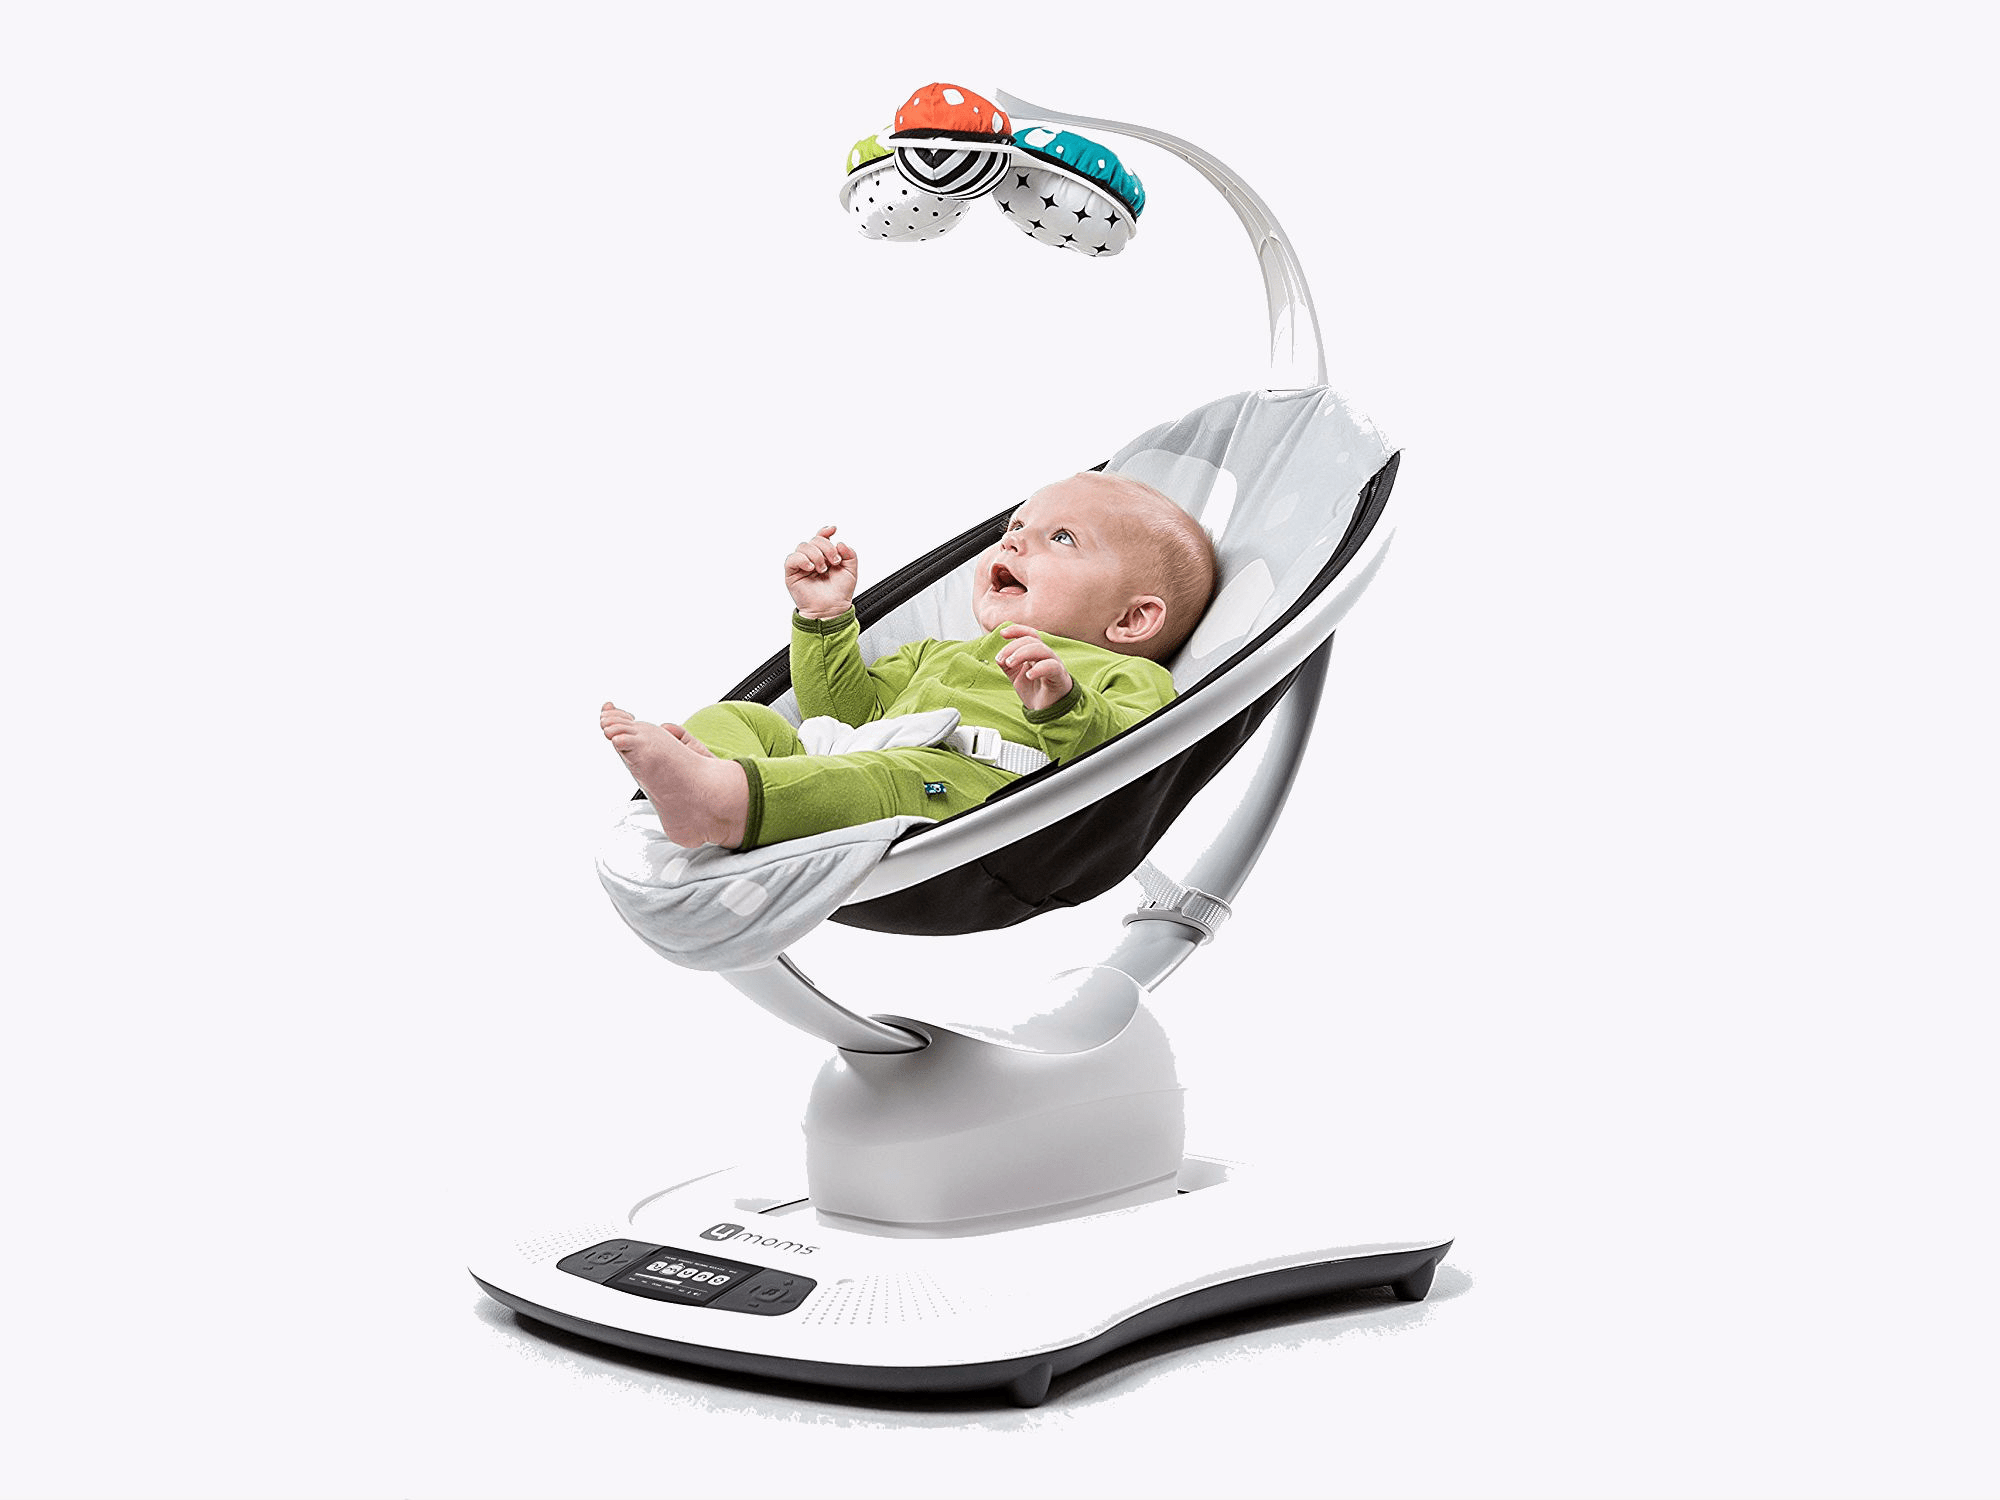 Toddler Baby Bouncer The Best Baby Bouncers You Can Buy Business Insider